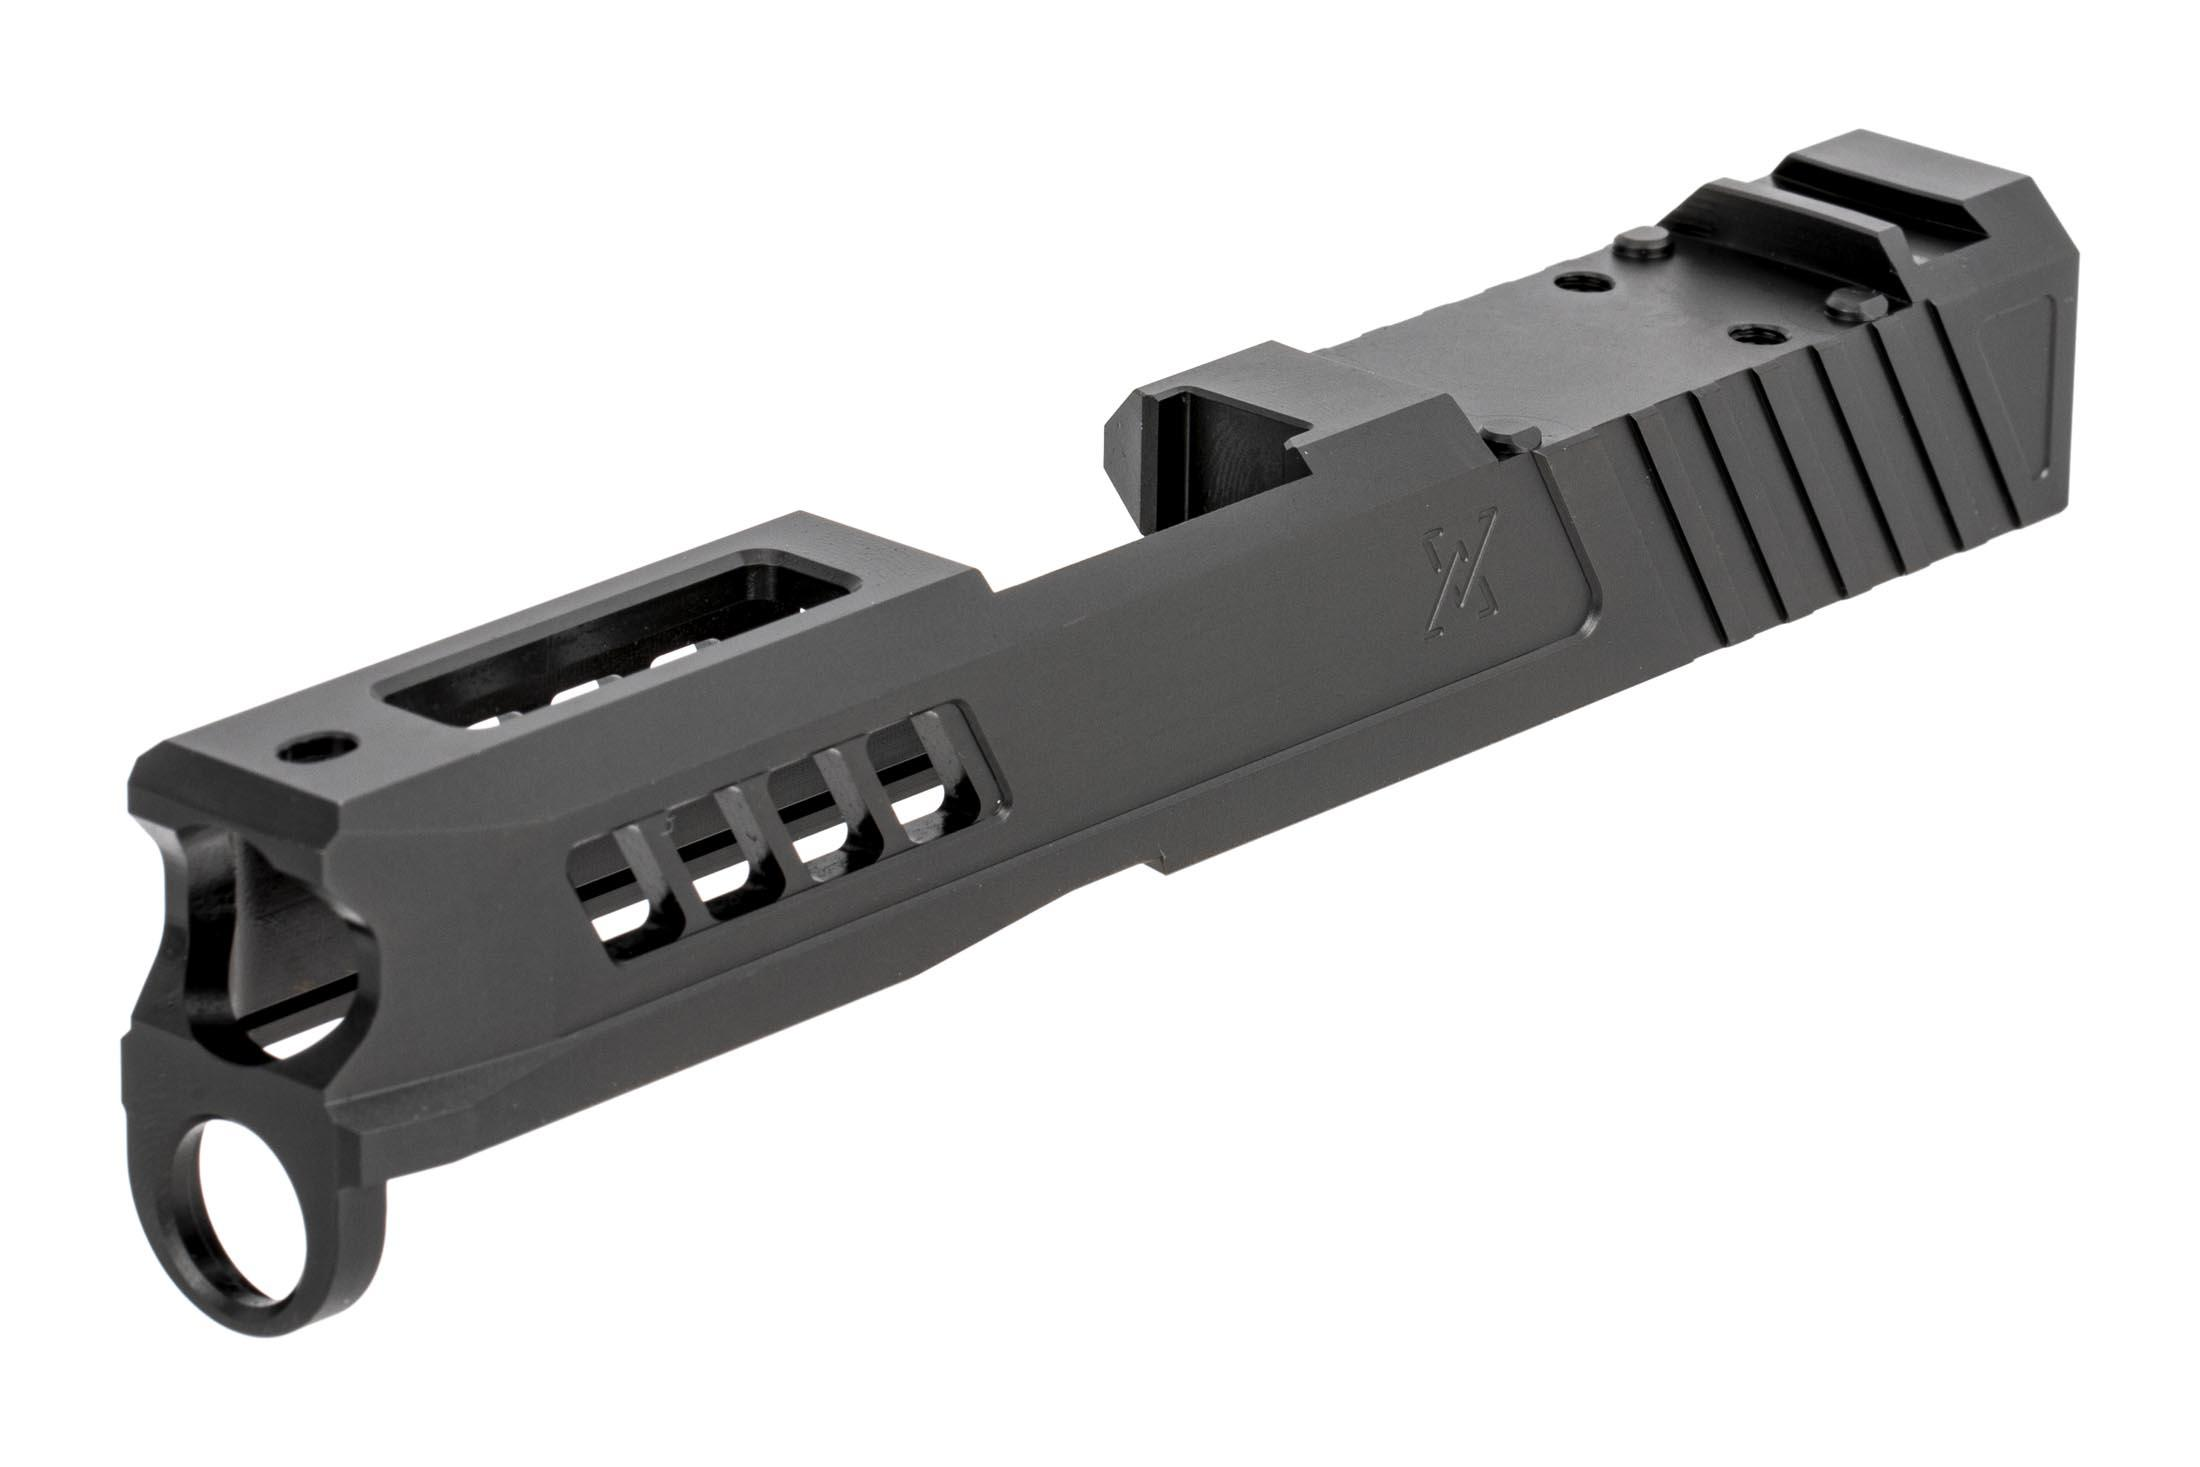 TRUE Precision AXIOM stripped 9mm slide for Glock G43 and Glock G43x handguns with black DLC finish